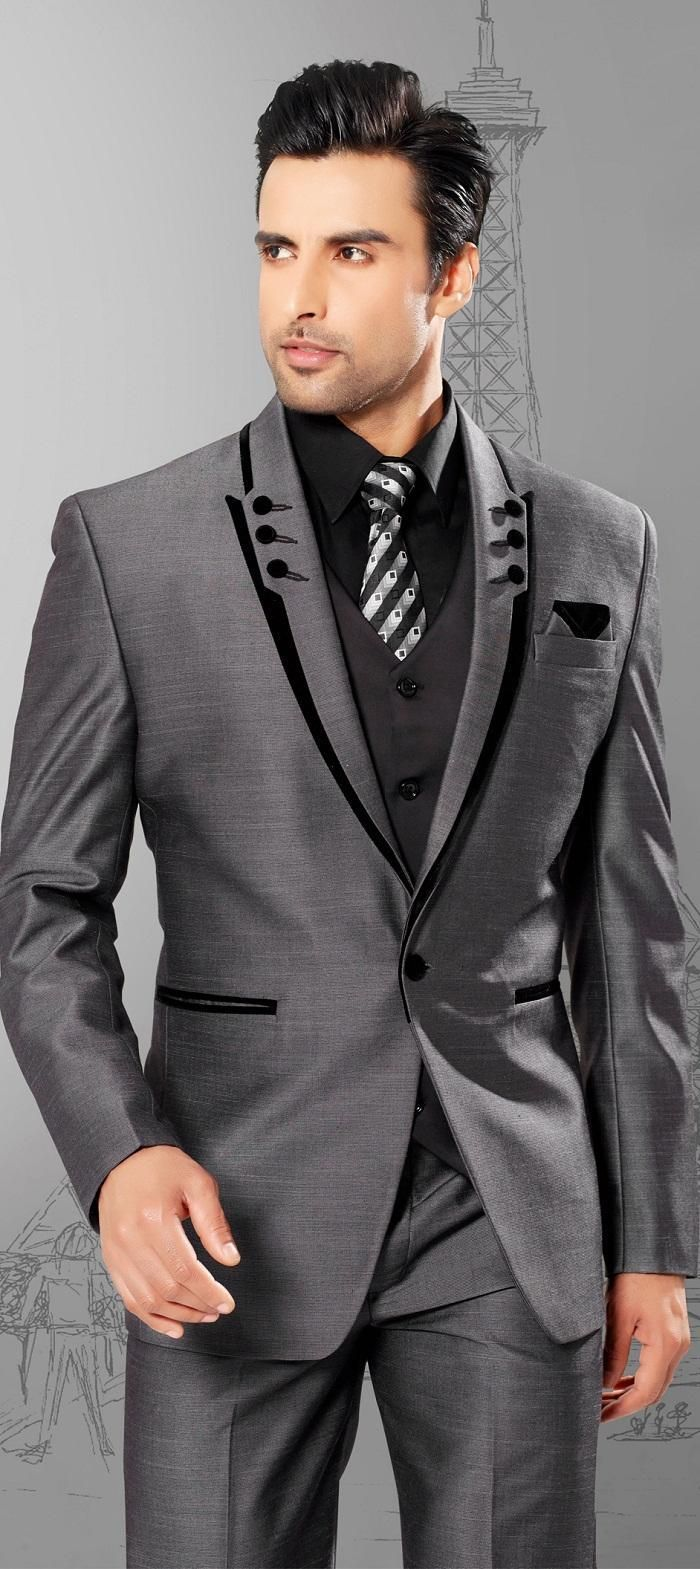 full black tuxedo men suits slim fit peaked lapel tuxedos